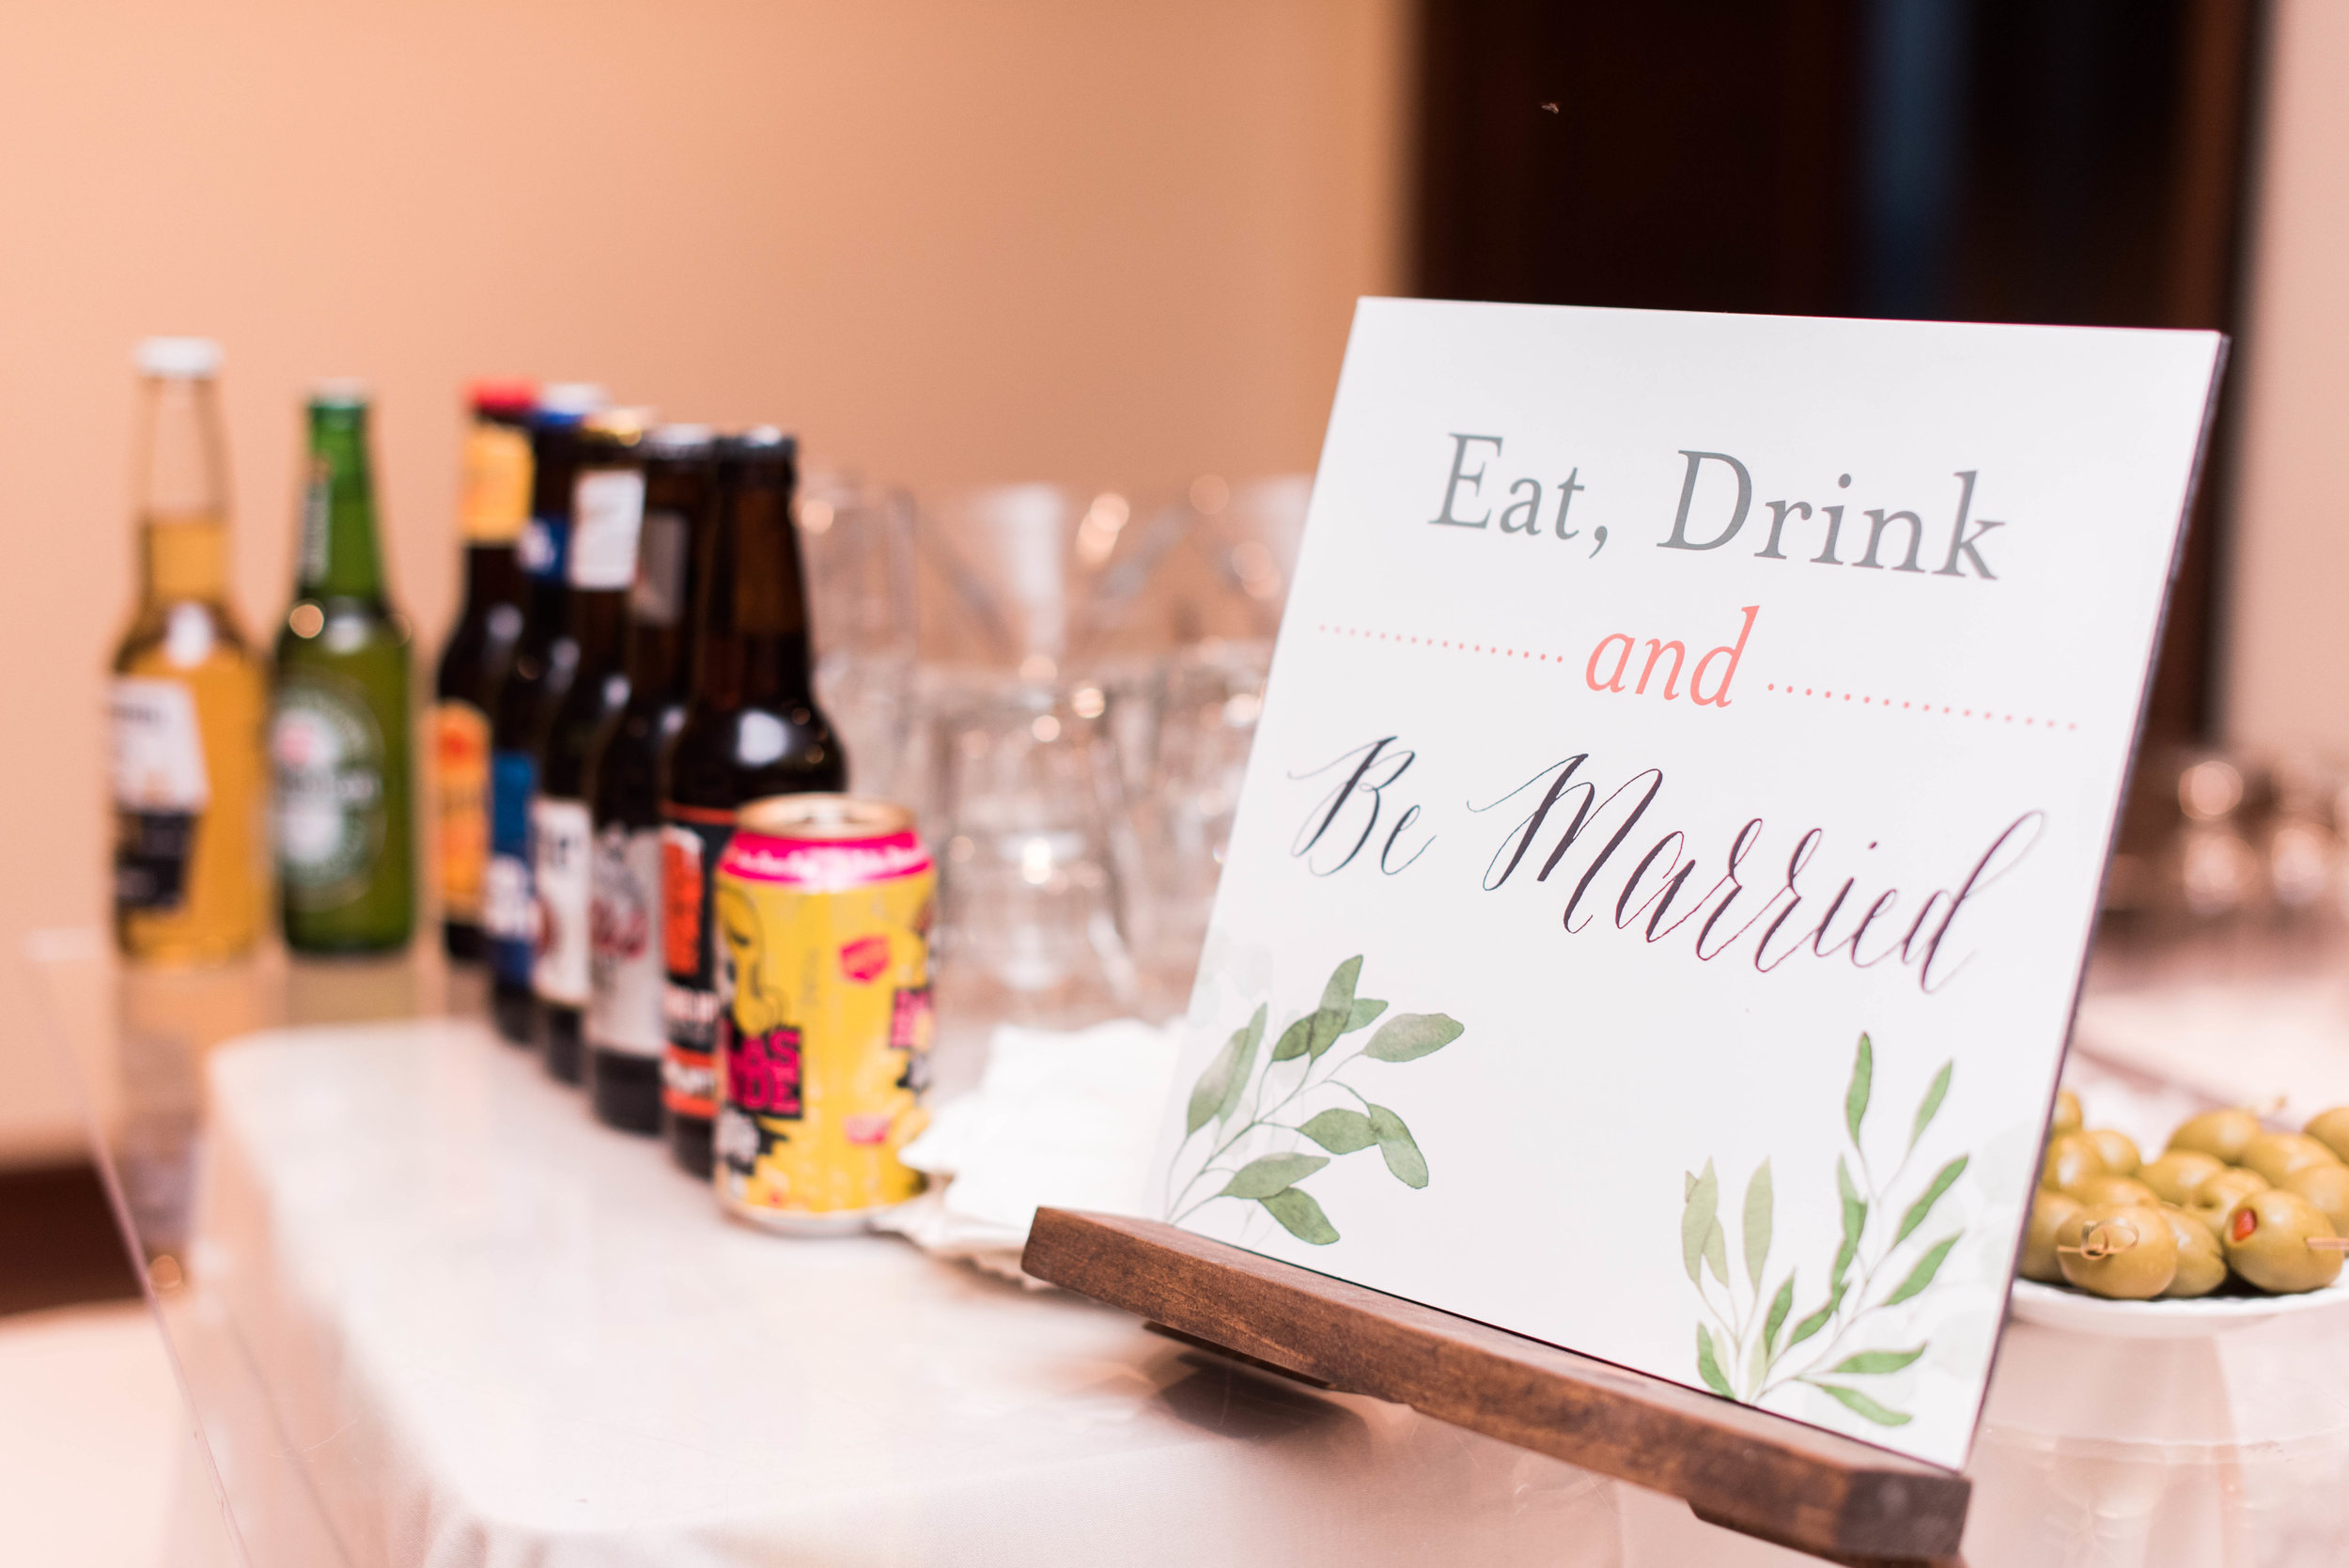 Before entering the ceremony hall, there was an open bar for guests.